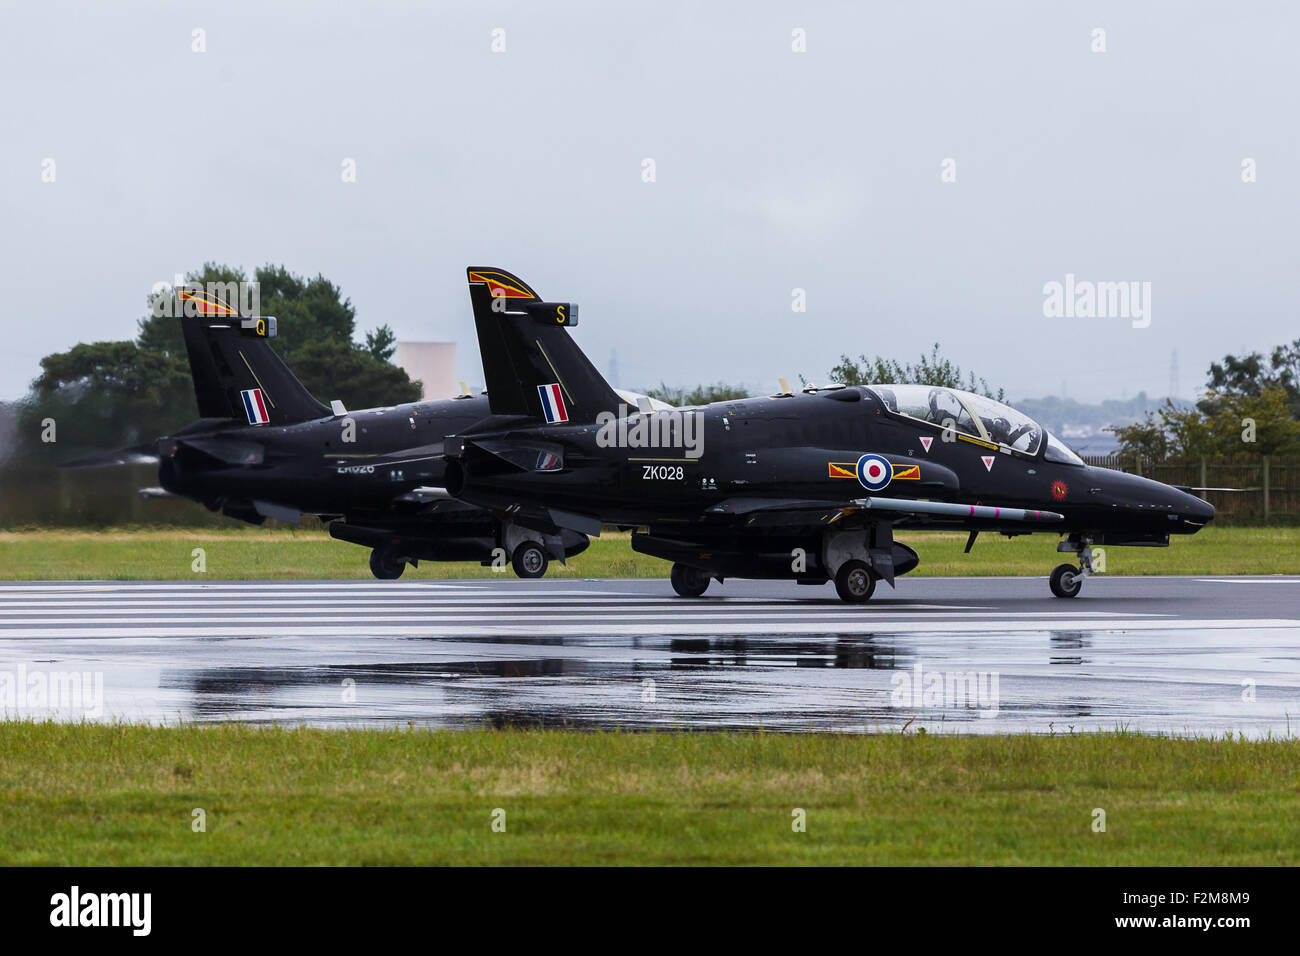 Pair of Hawk T2 preparing for take-off on the runway - Stock Image